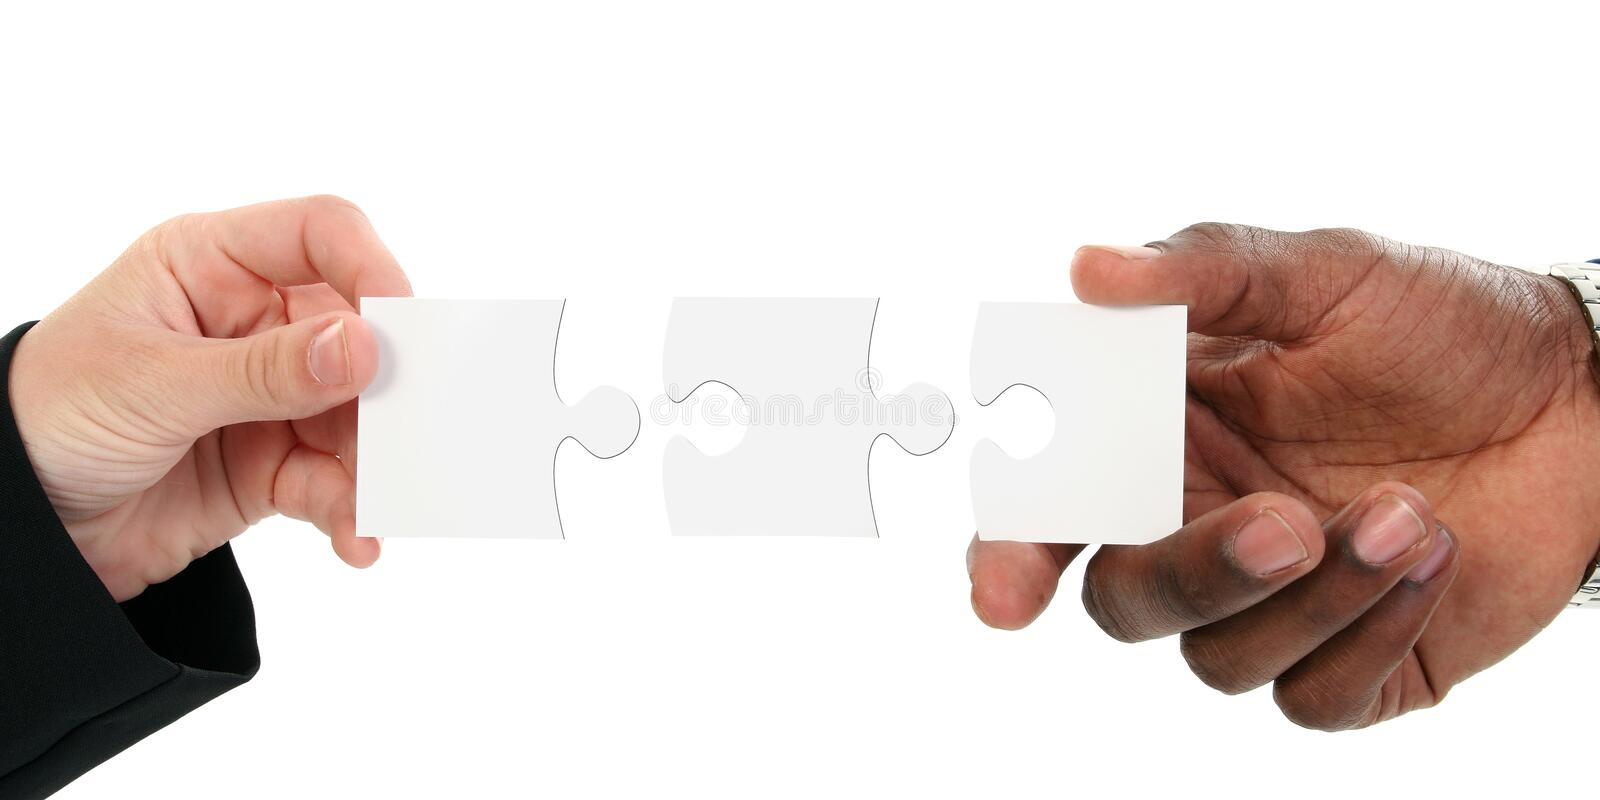 Hands And Puzzle Pieces Isolated On White royalty free stock photography